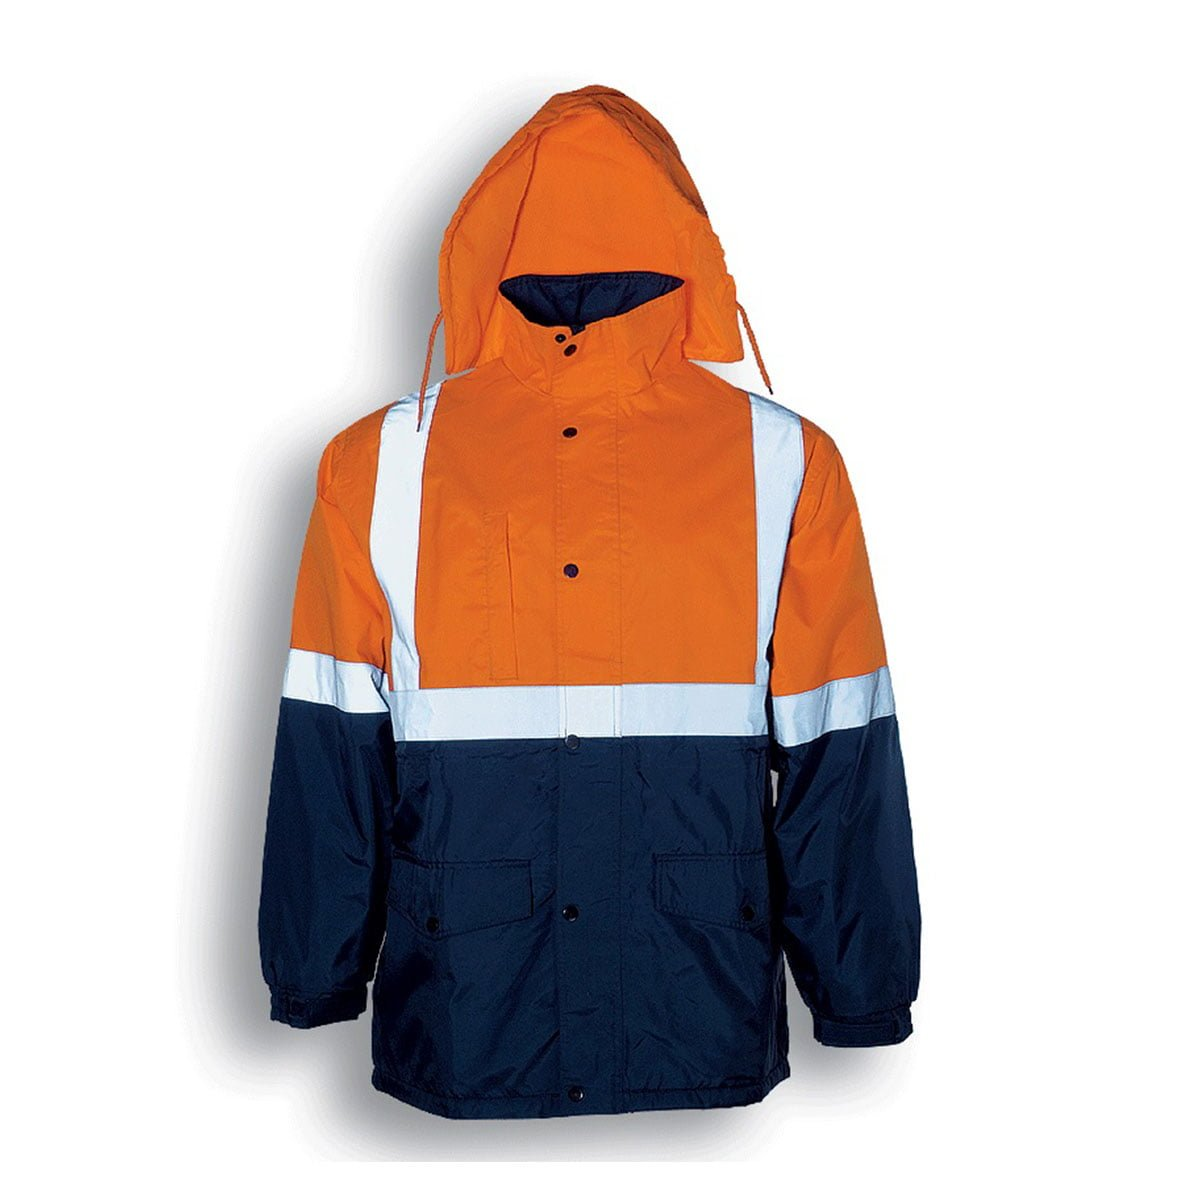 HI-VIS POLAR FLEECE LINED JACKET WITH TAPE-Orange / Navy